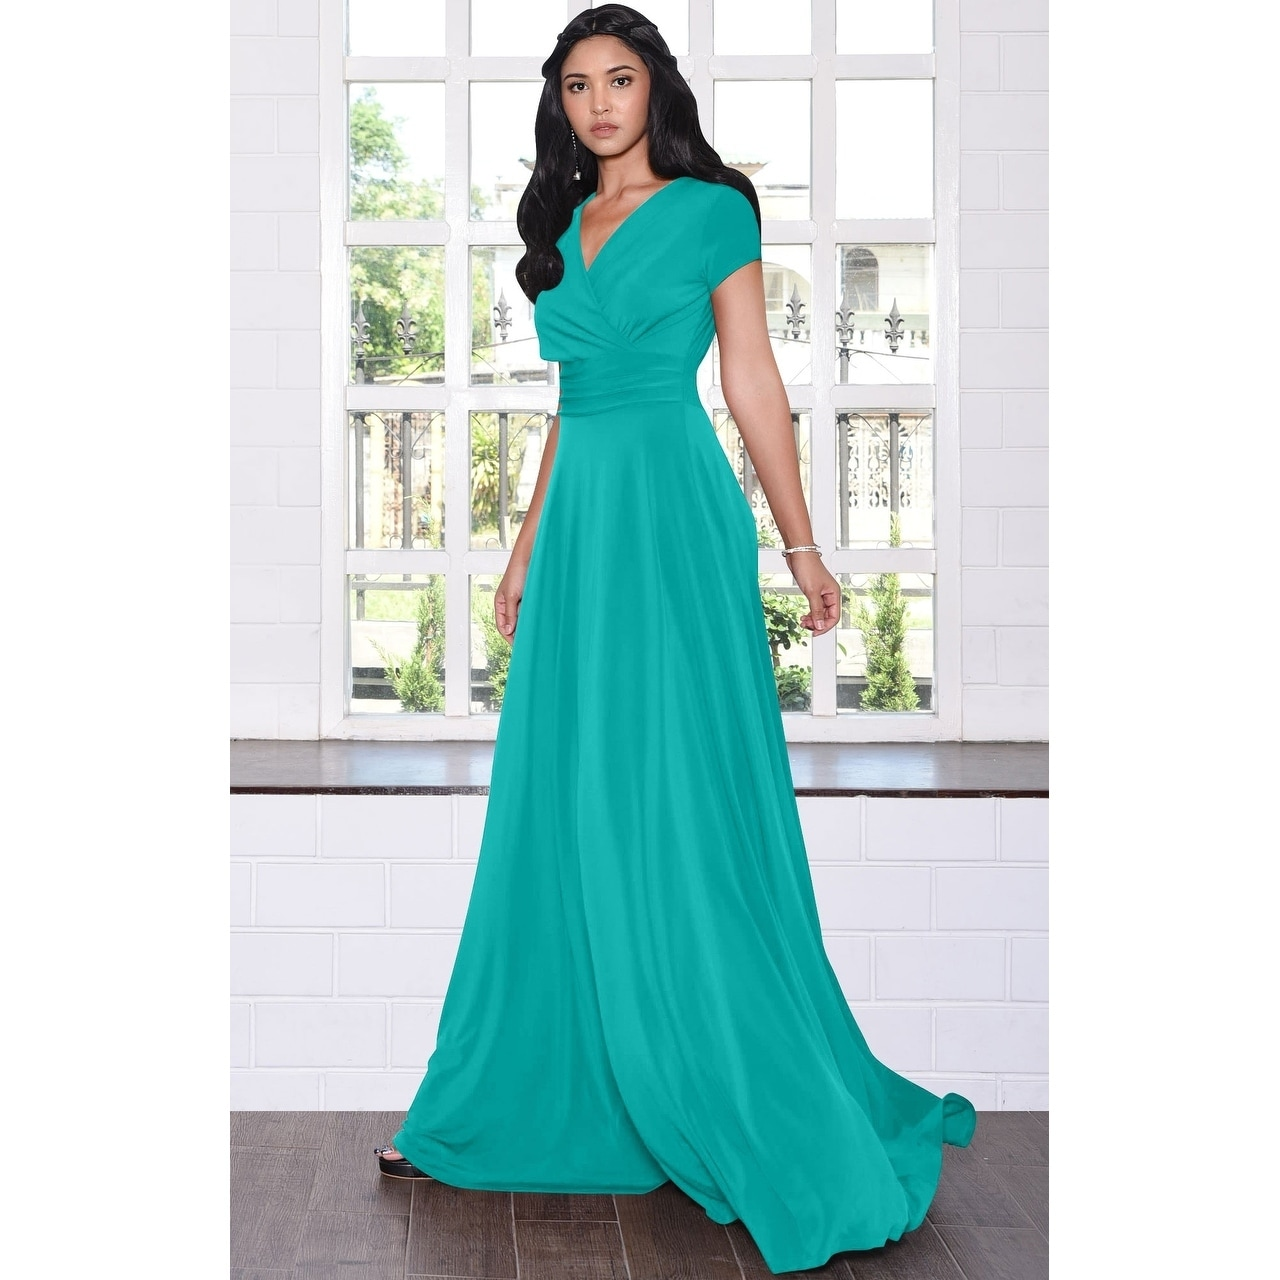 f08877d41d4 KOH KOH Women s Long Semi-Formal Short Cap Sleeve Maxi Dress Gown